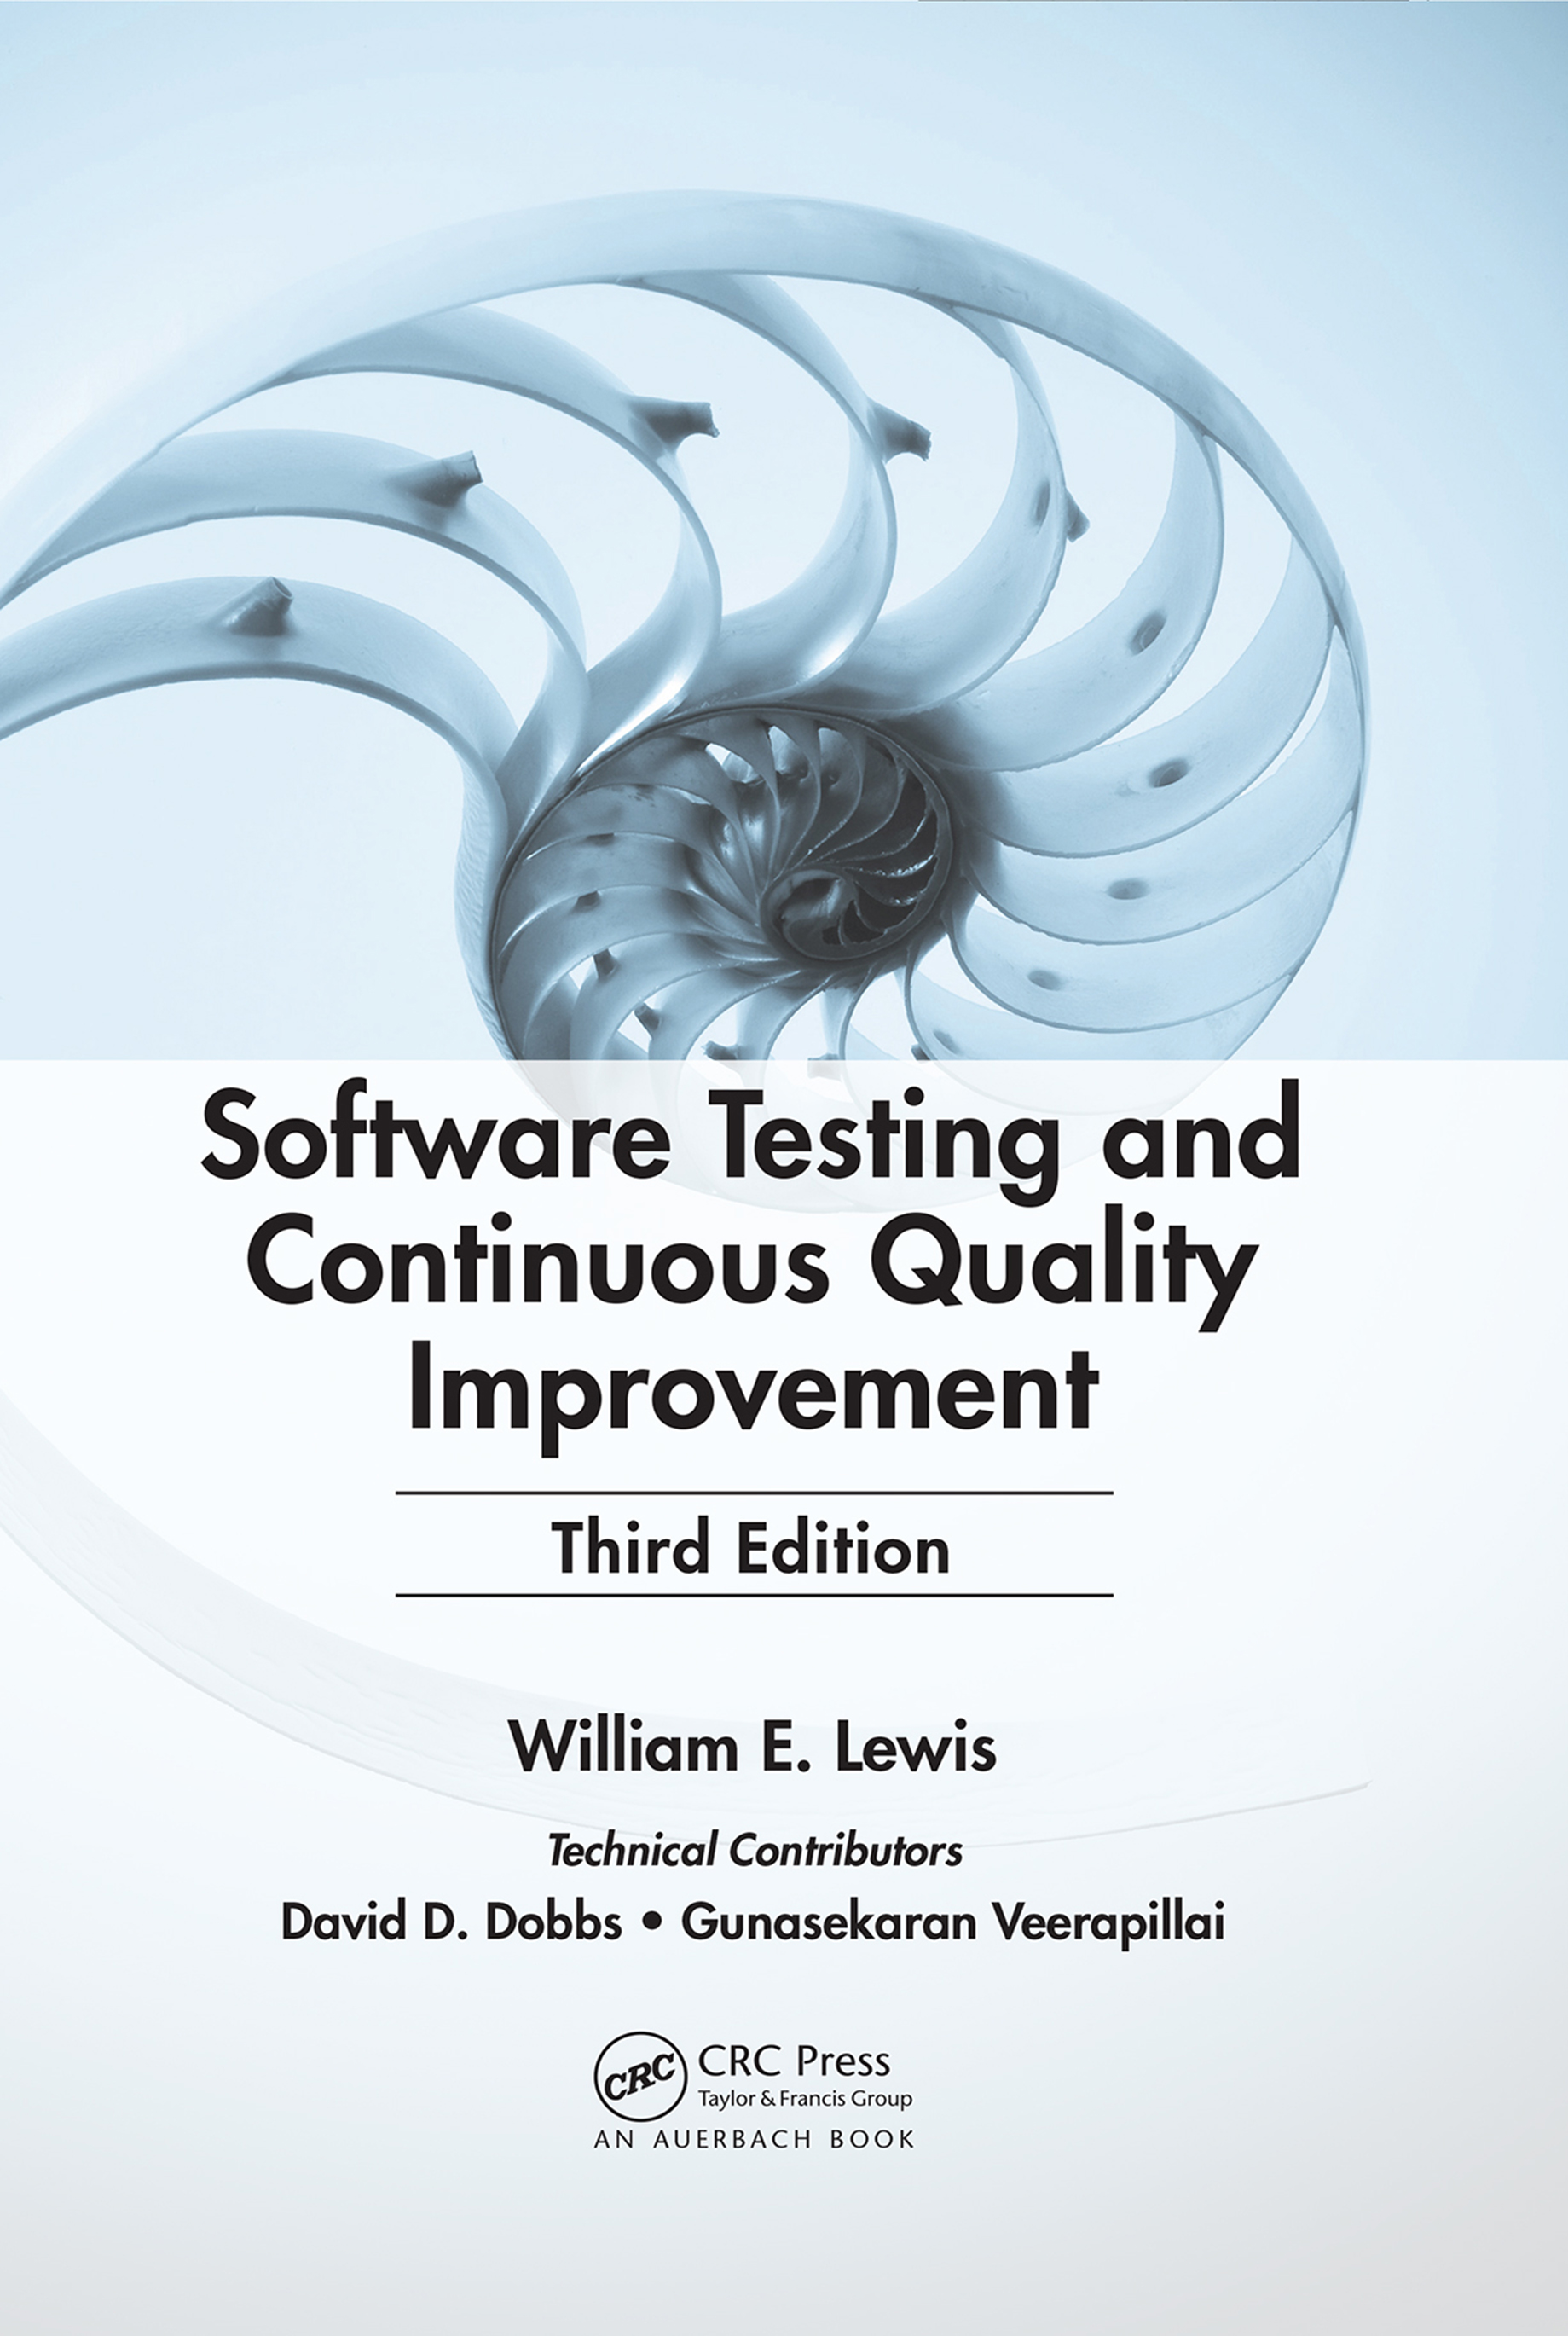 Download Ebook Software Testing and Continuous Quality Improvement (3rd ed.) by William E. Lewis Pdf